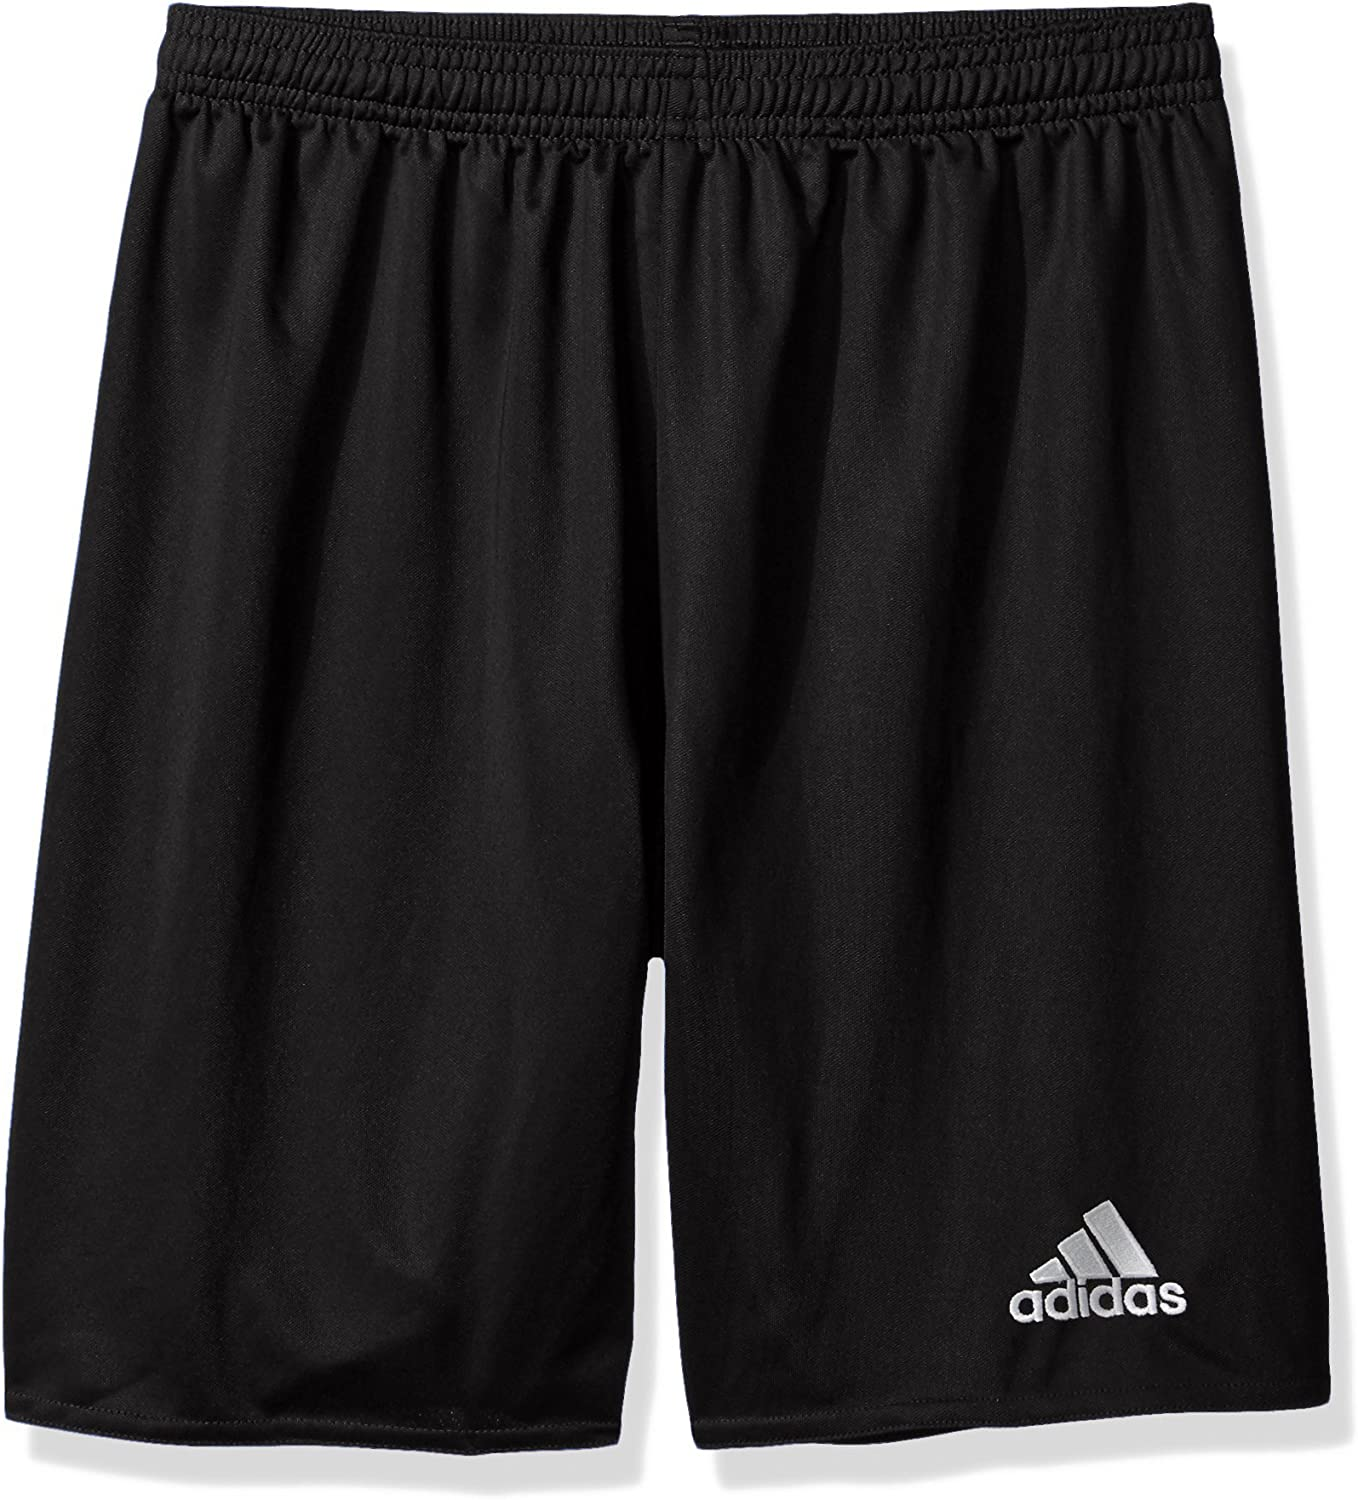 adidas Boys' Striped 19 Jersey